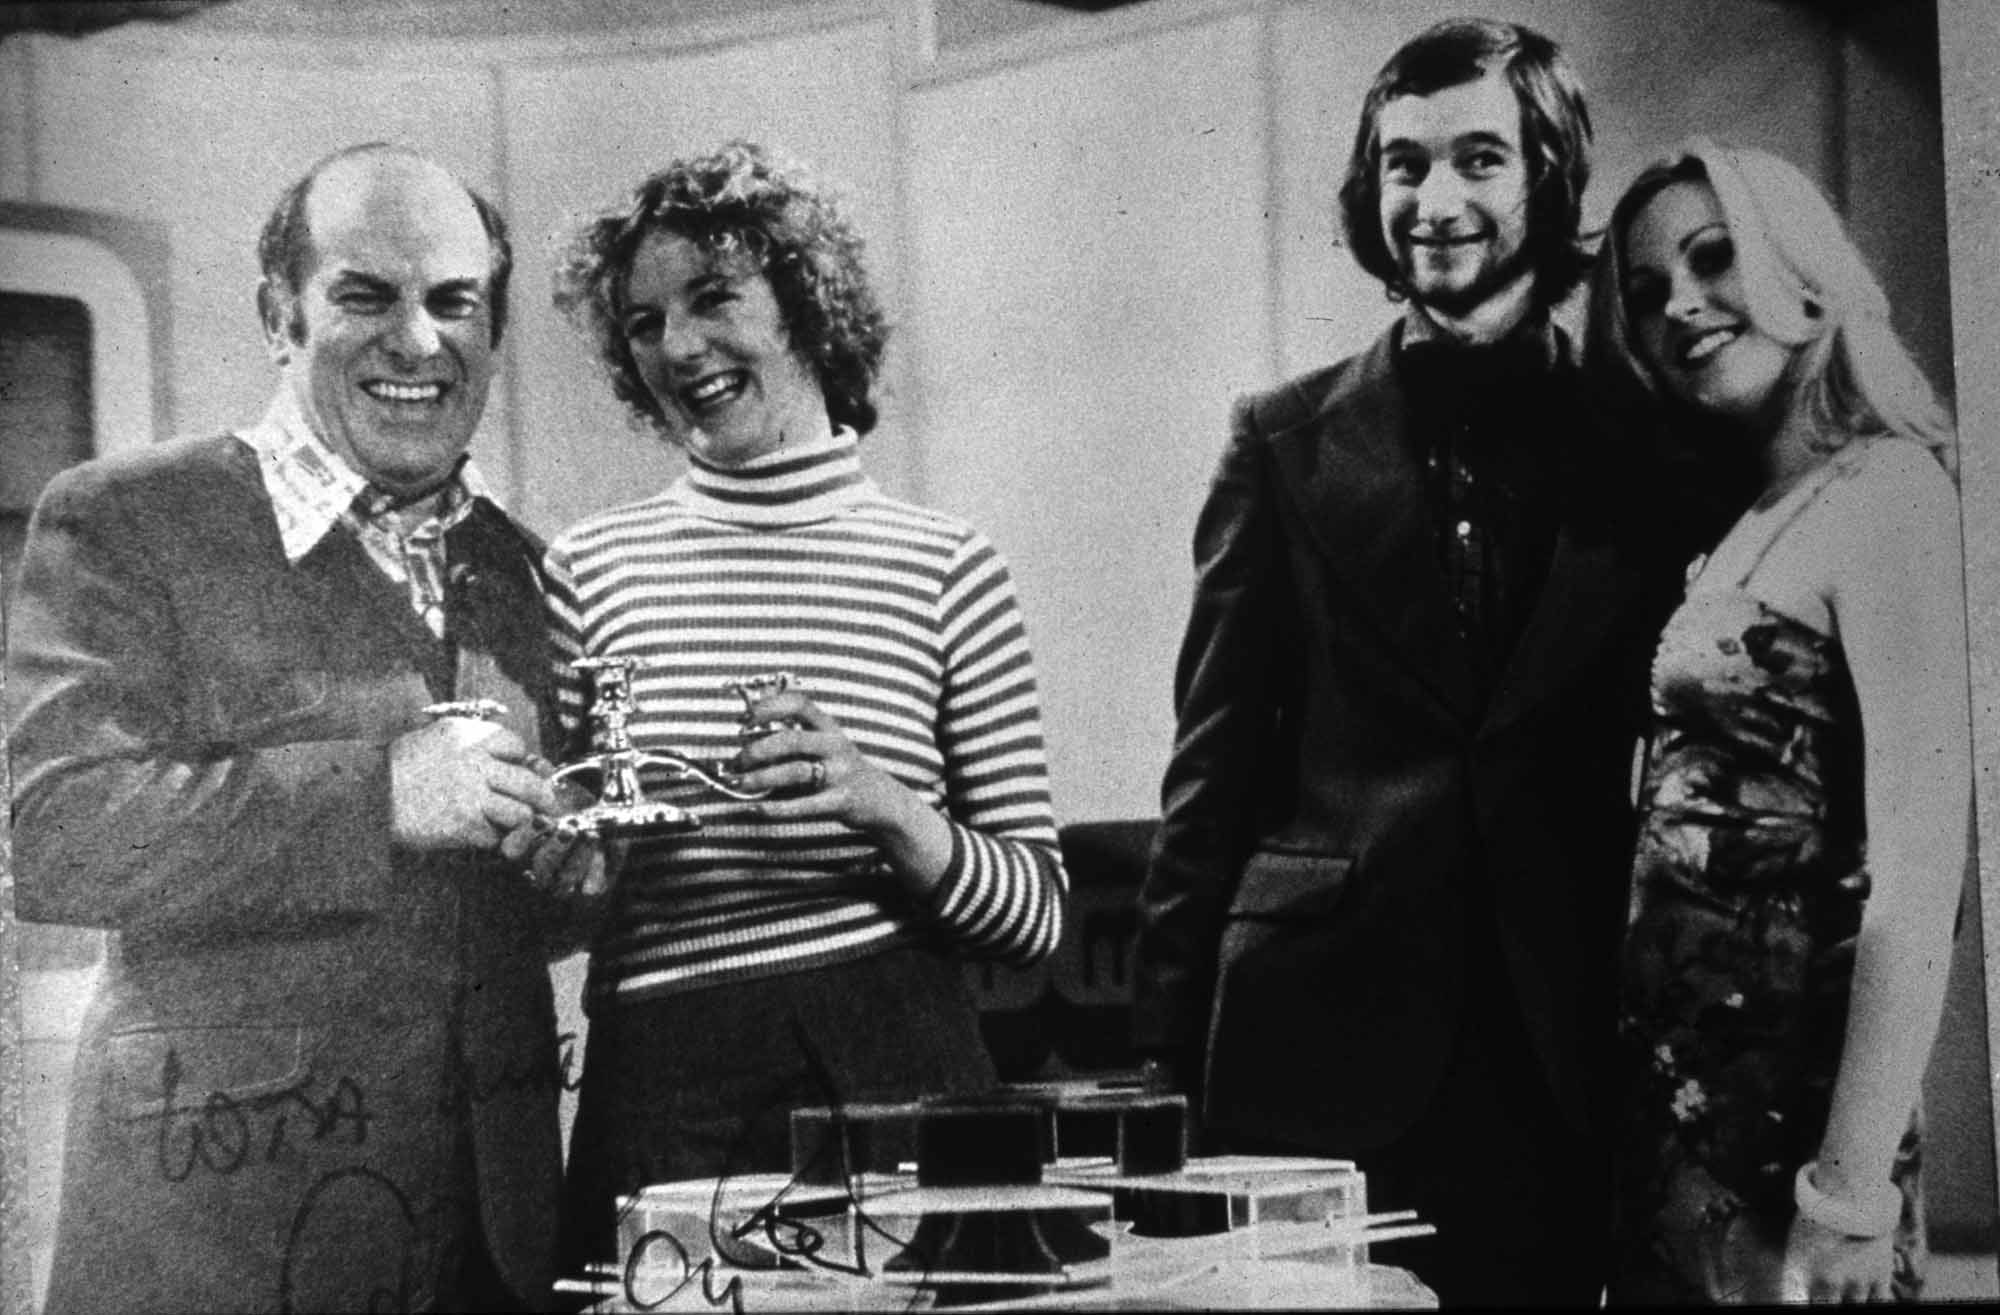 Marty St James, Mr and Mrs, (1976). Archived by the British Film Institute London UK (BFI).